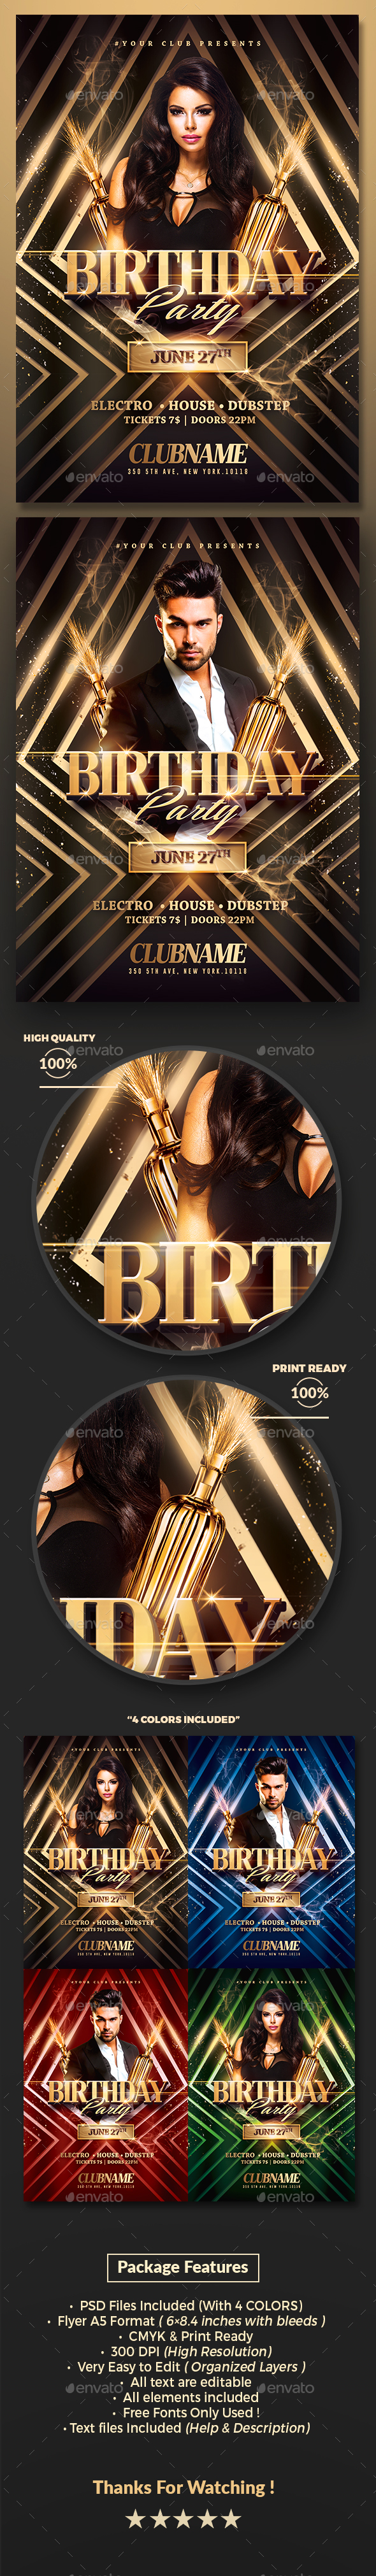 Gold Birthday Party | Psd Flyer Template - Clubs & Parties Events